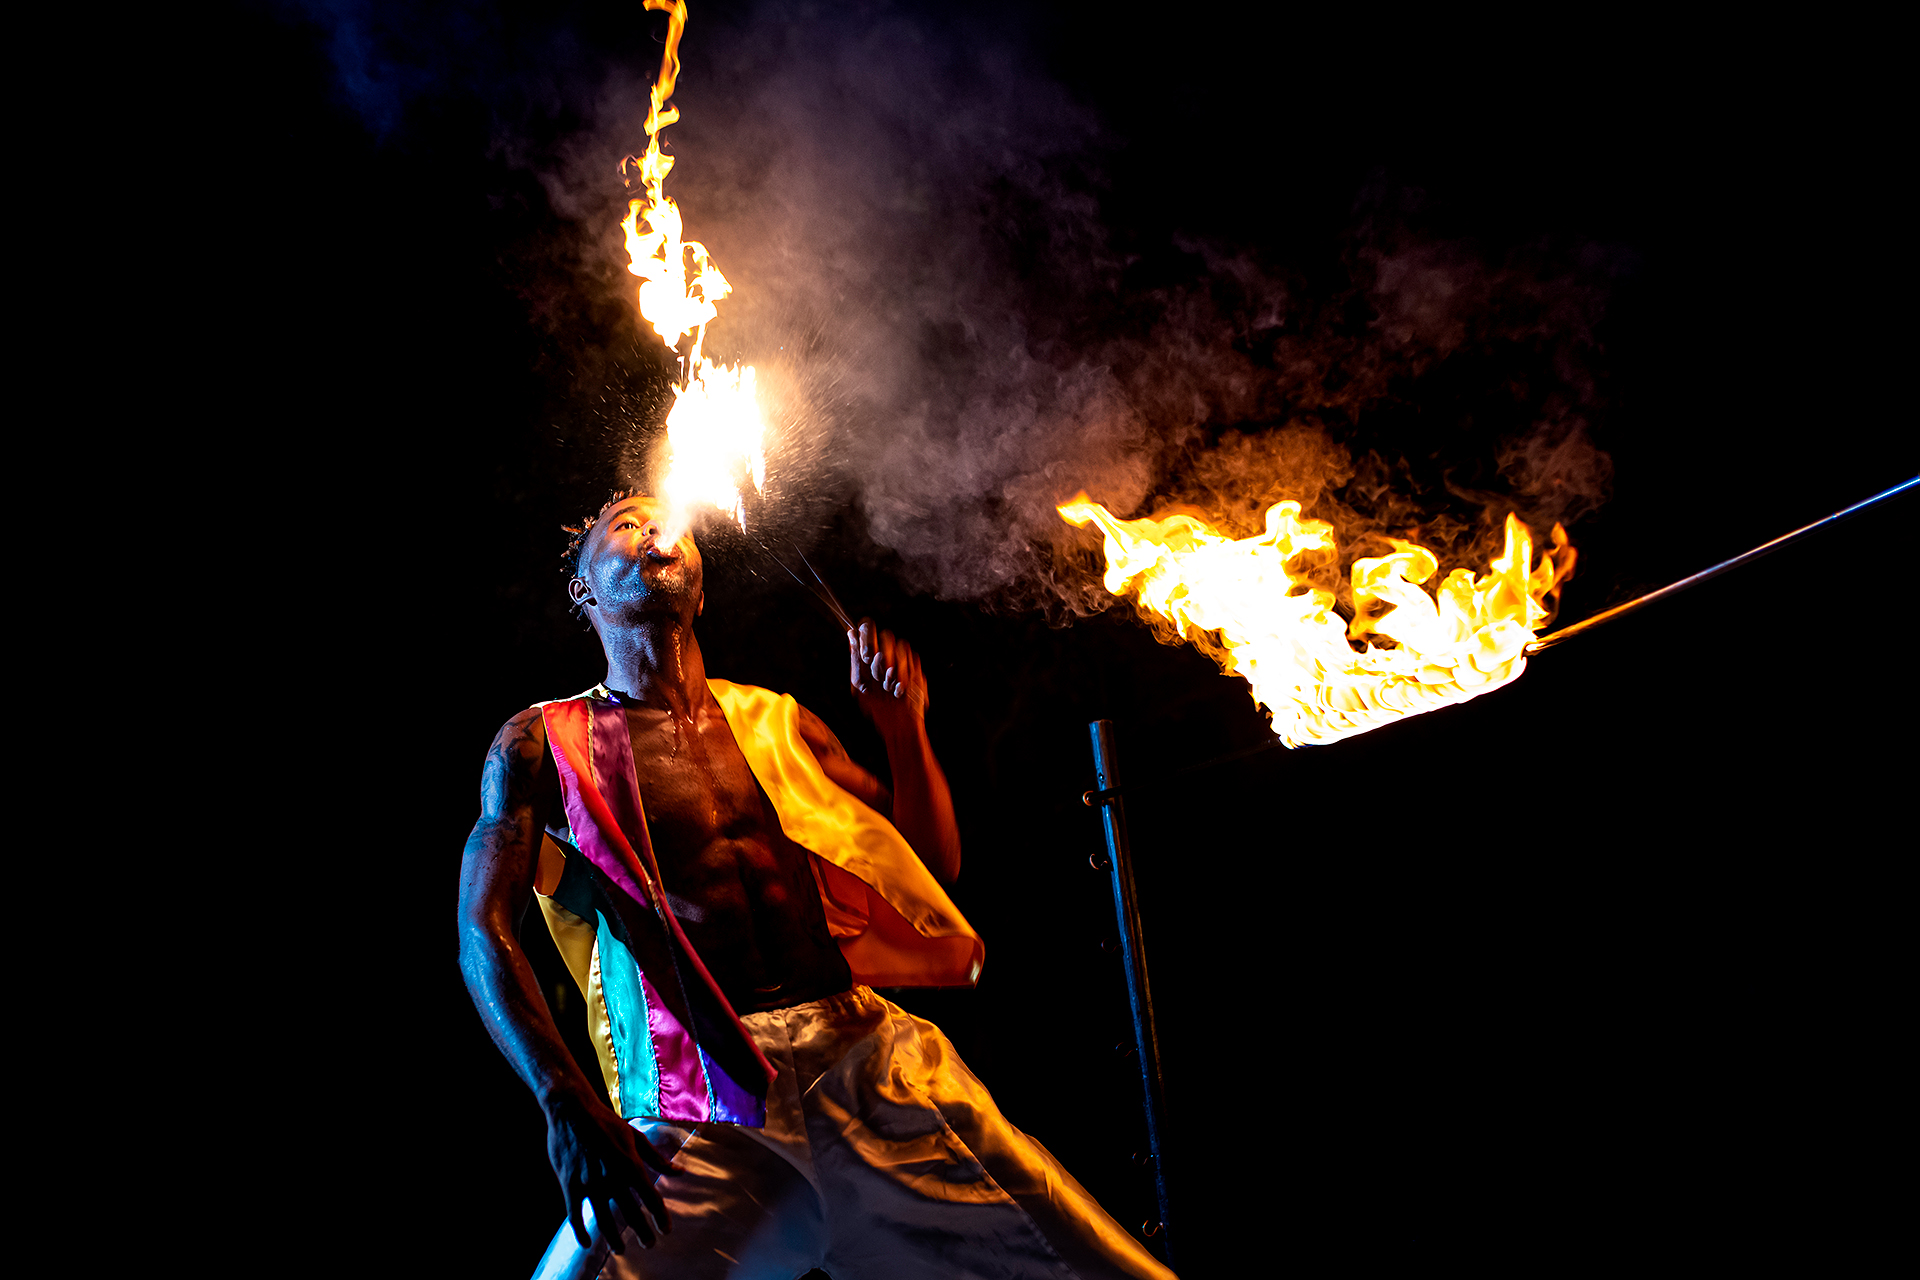 St. Lucia Elopement Reception Fire eater | A firebreather performs for the small group